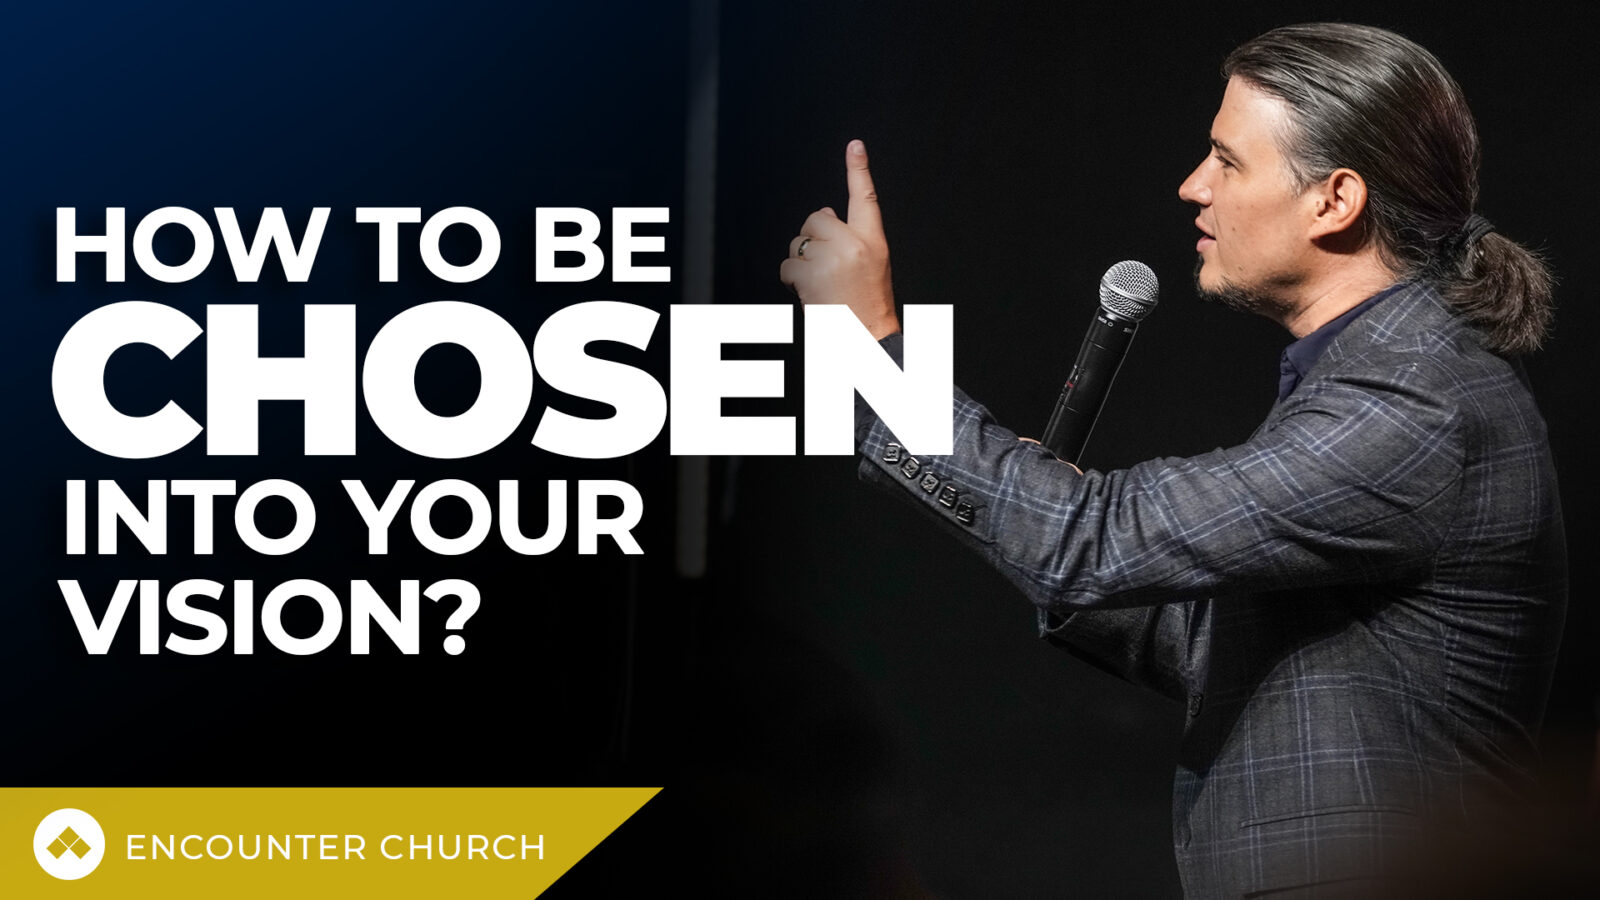 How To Be Chosen Into Your Vision?